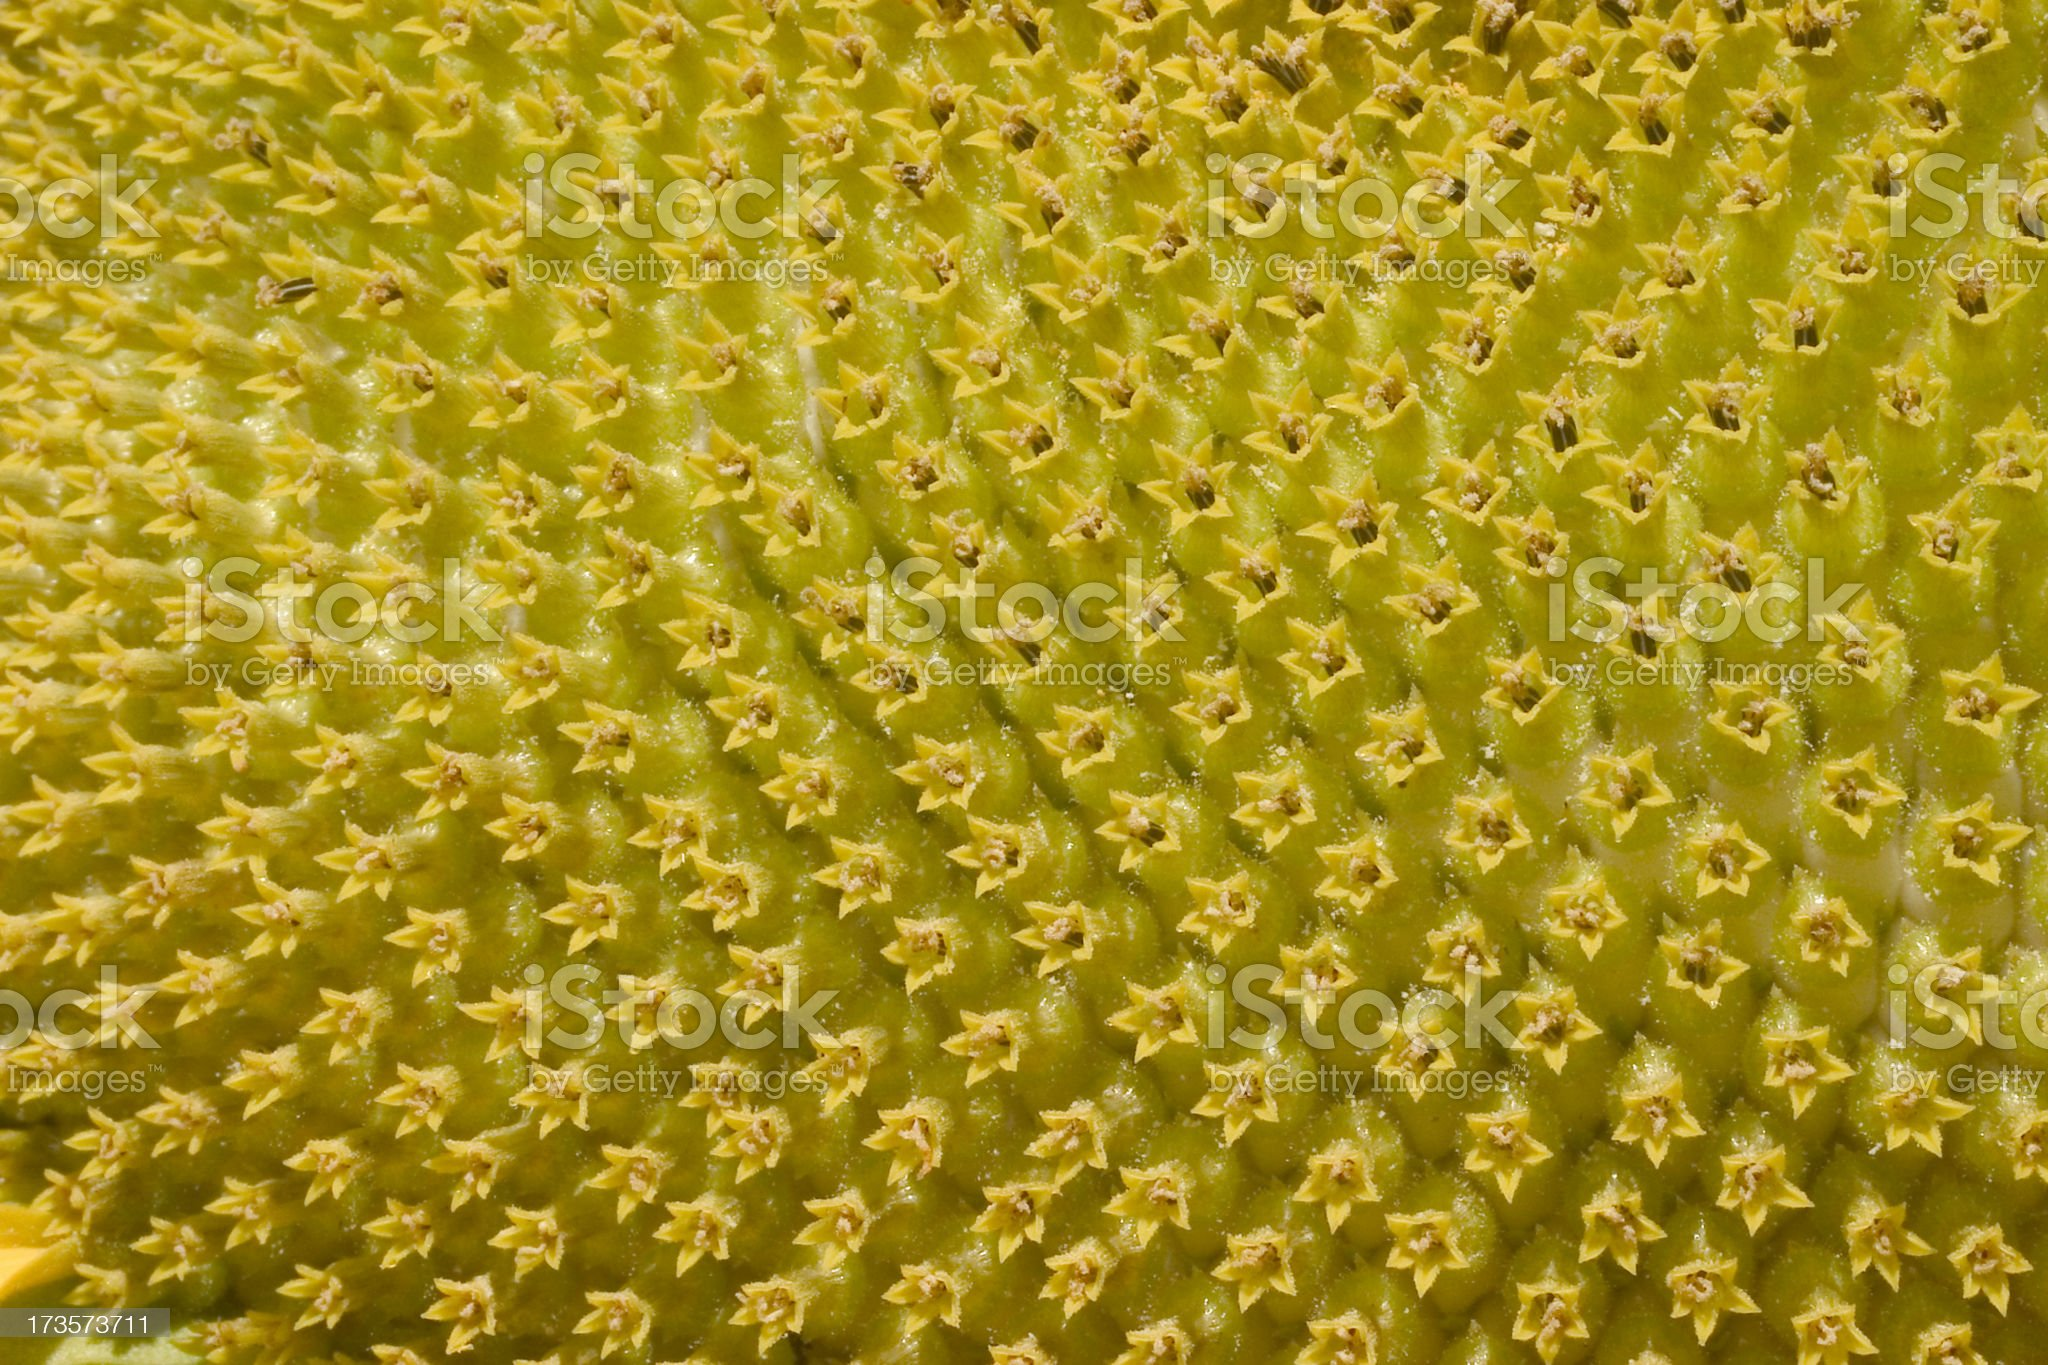 sunflower close up royalty-free stock photo